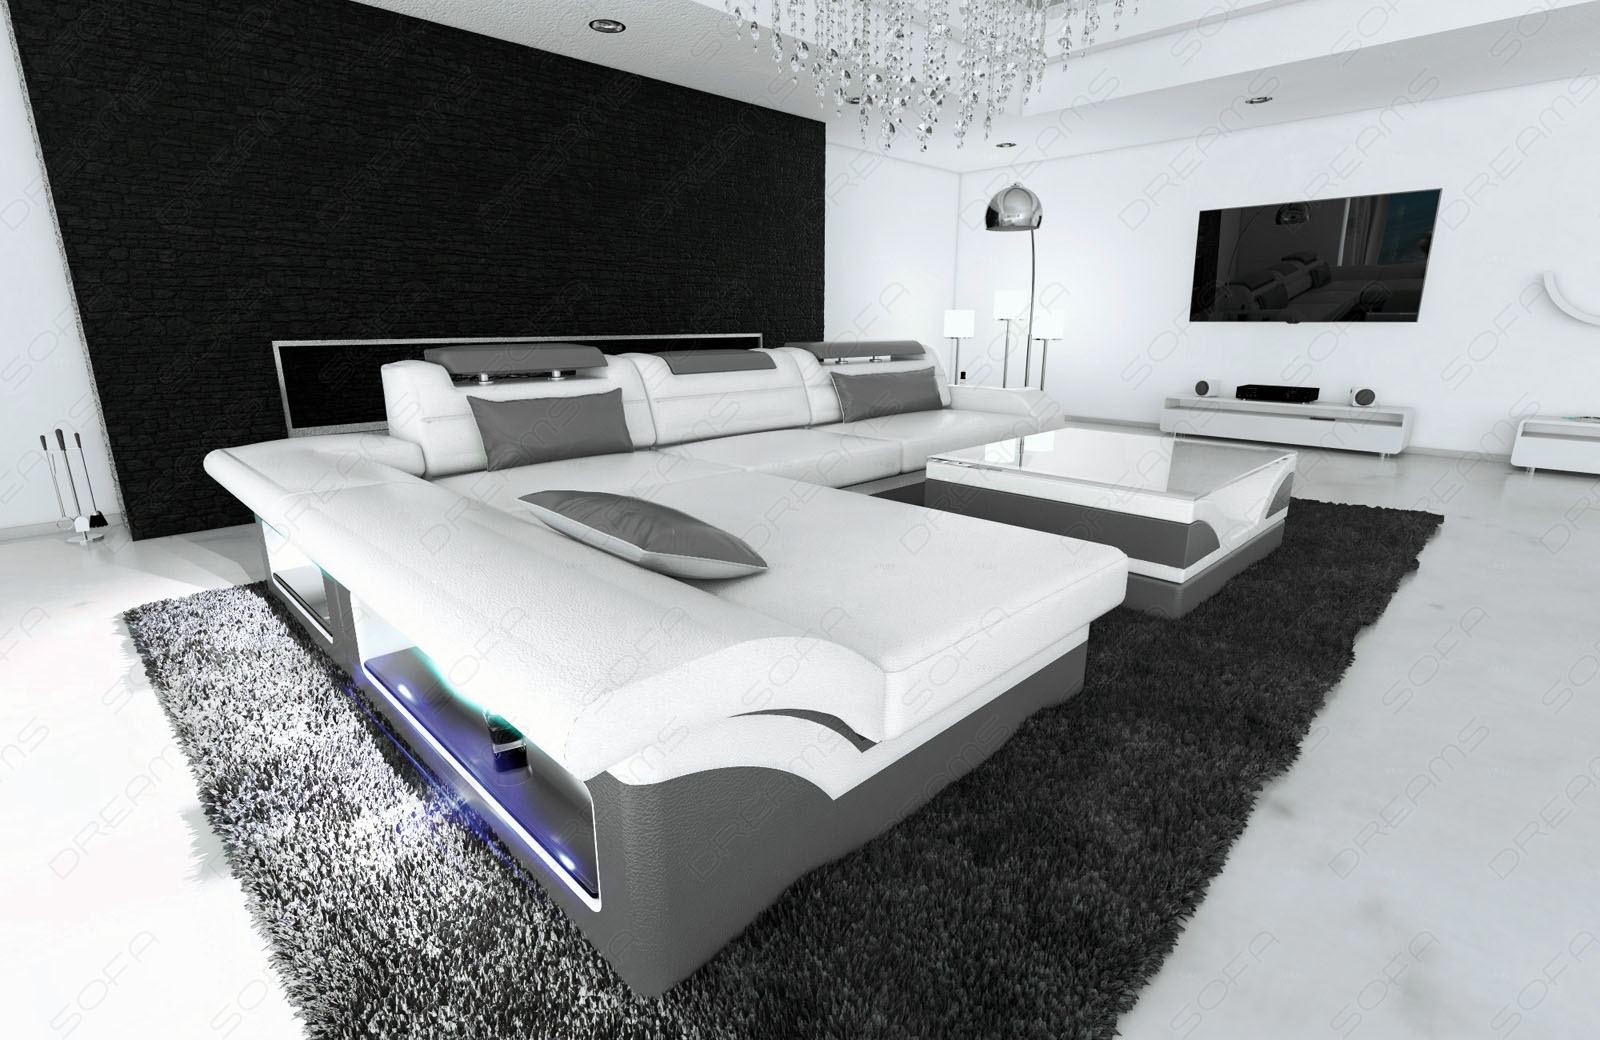 ledersofa design monza l form weiss grau mit led. Black Bedroom Furniture Sets. Home Design Ideas